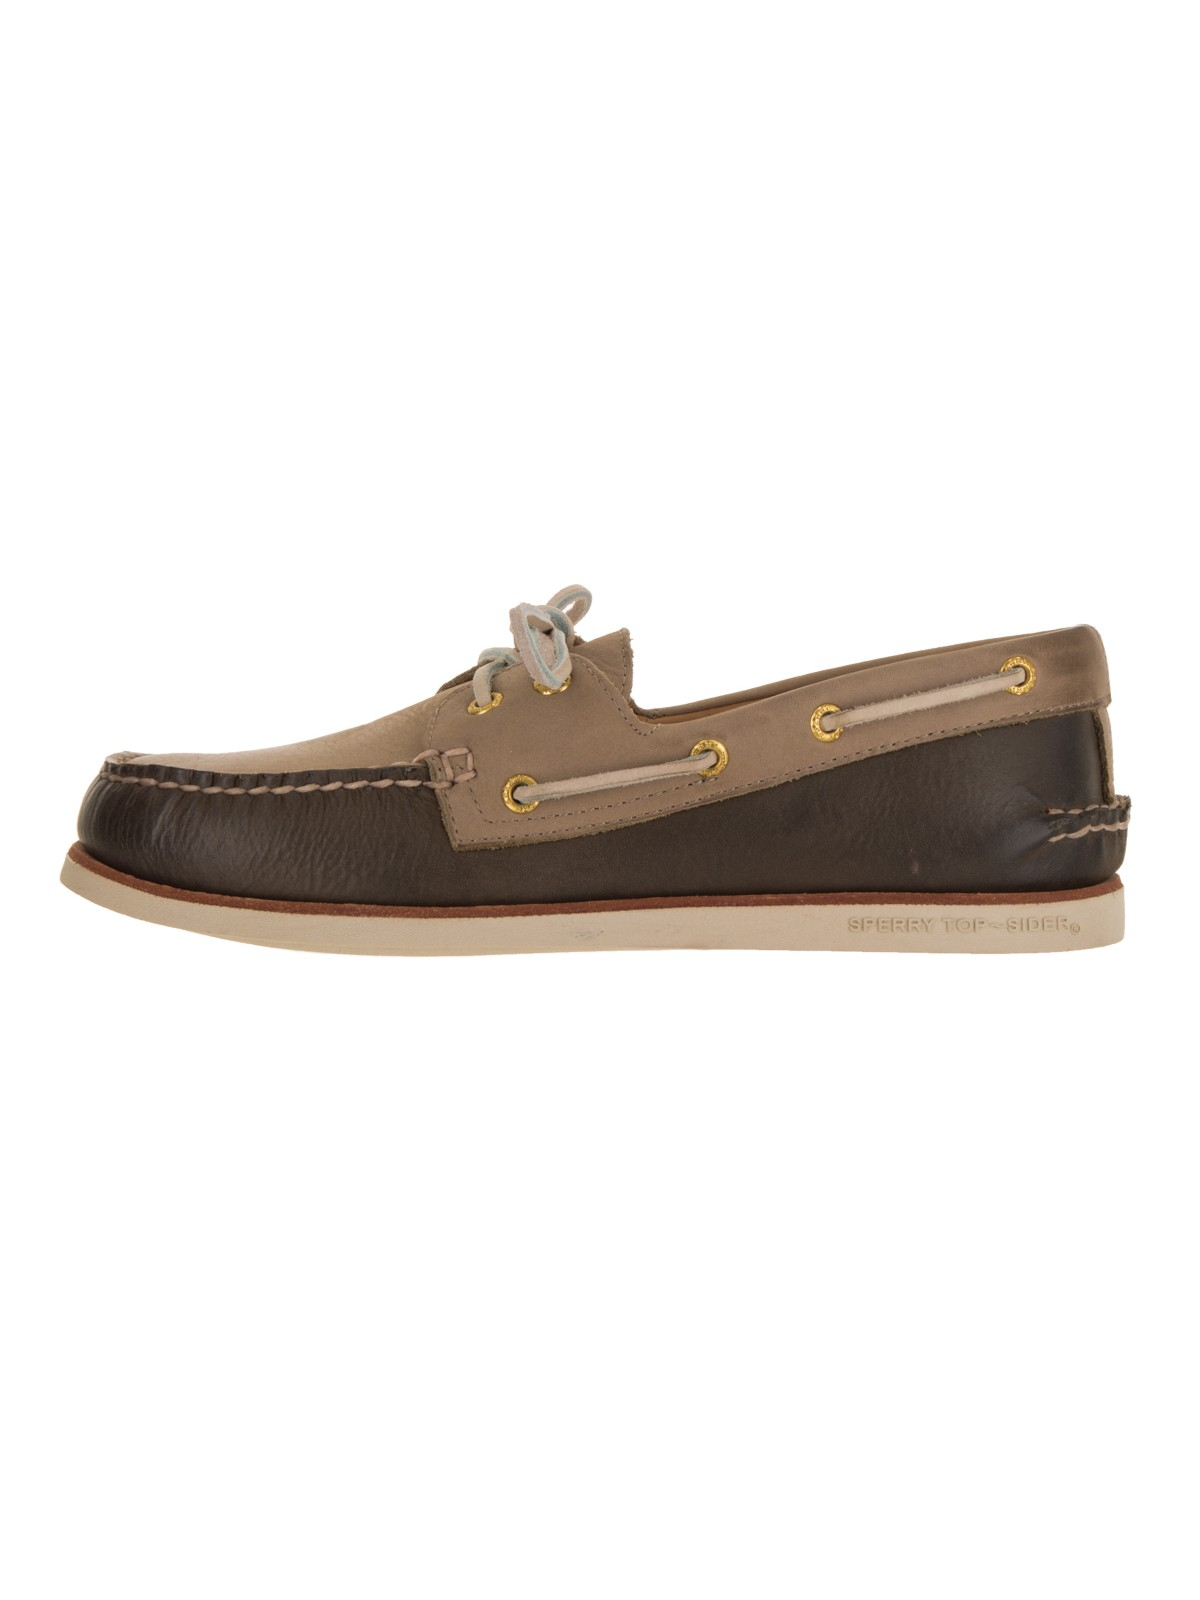 Sperry Top-Sider Men's Gold Authentic Wedge Boat Shoe